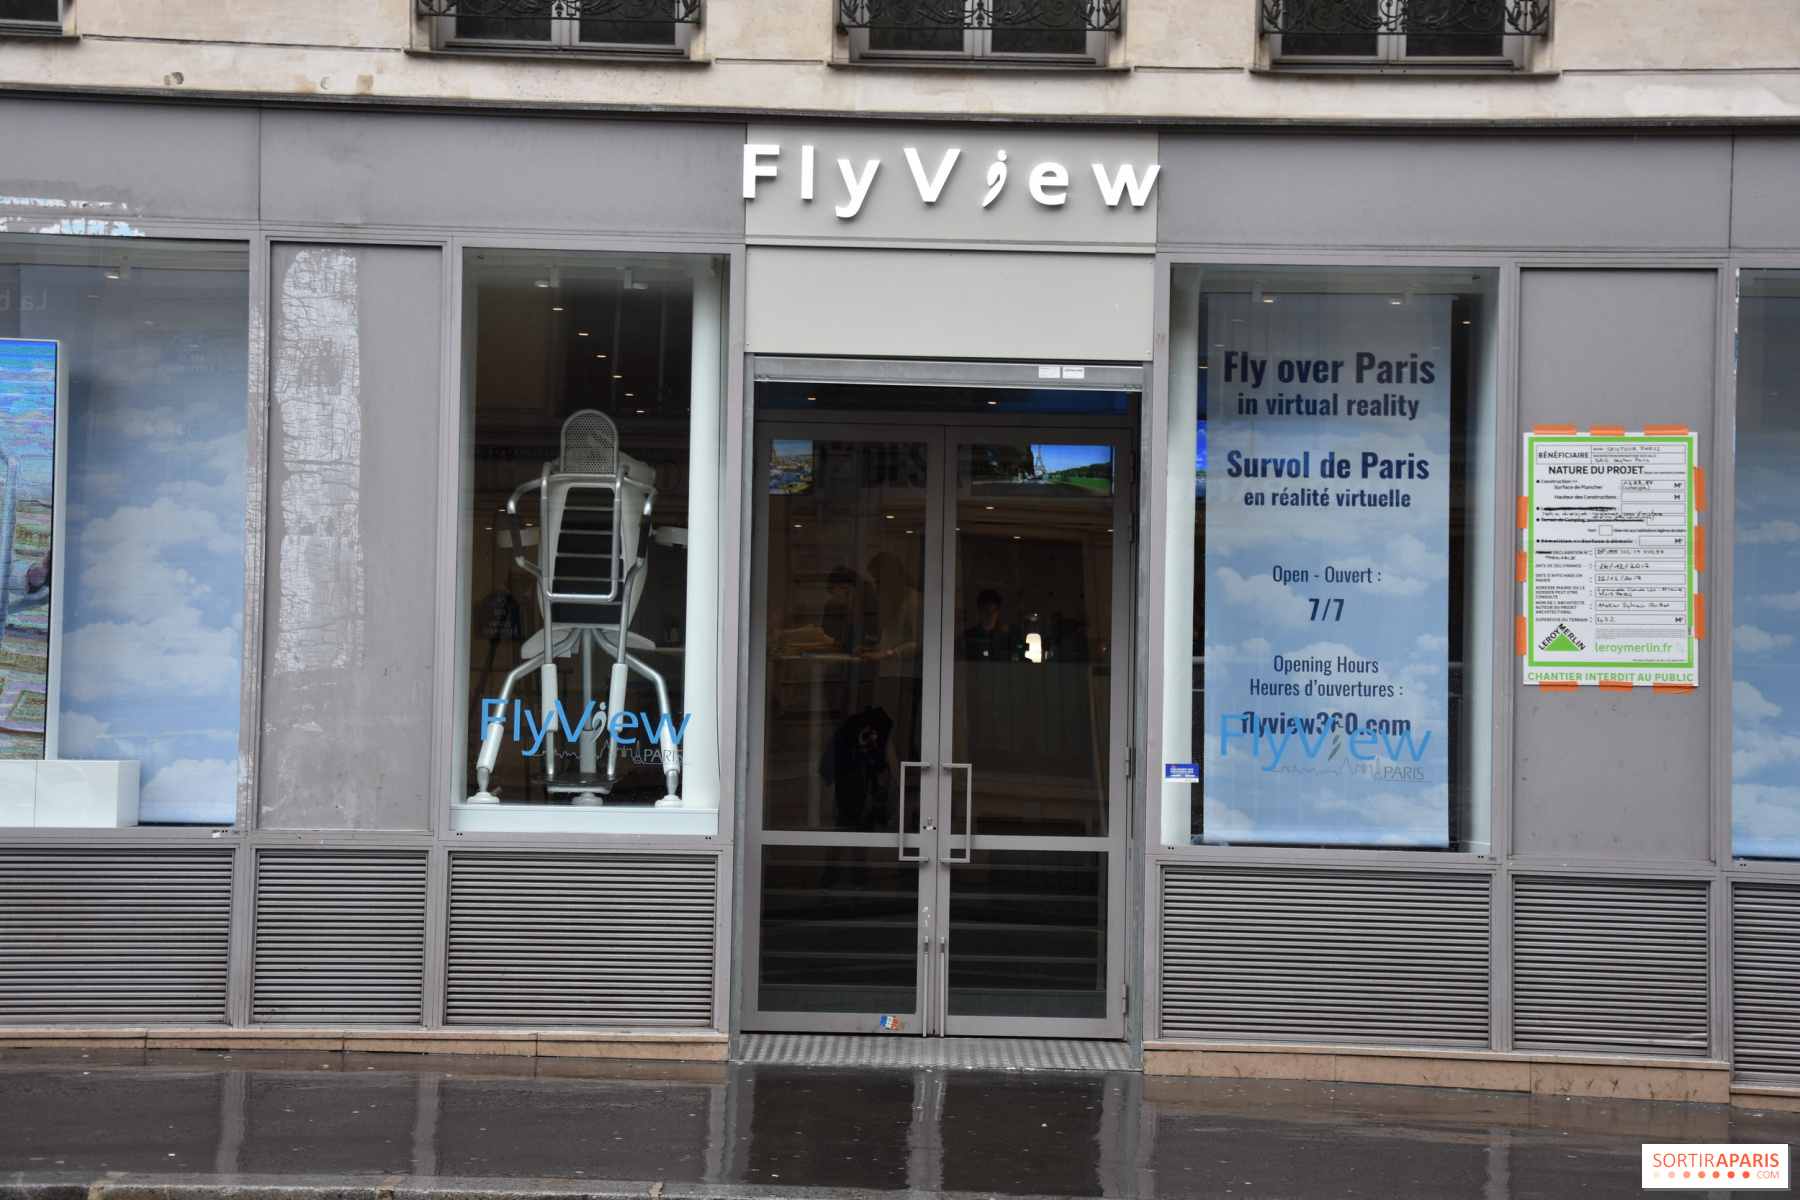 Flyview The Virtual Reality Cultural Attraction At The